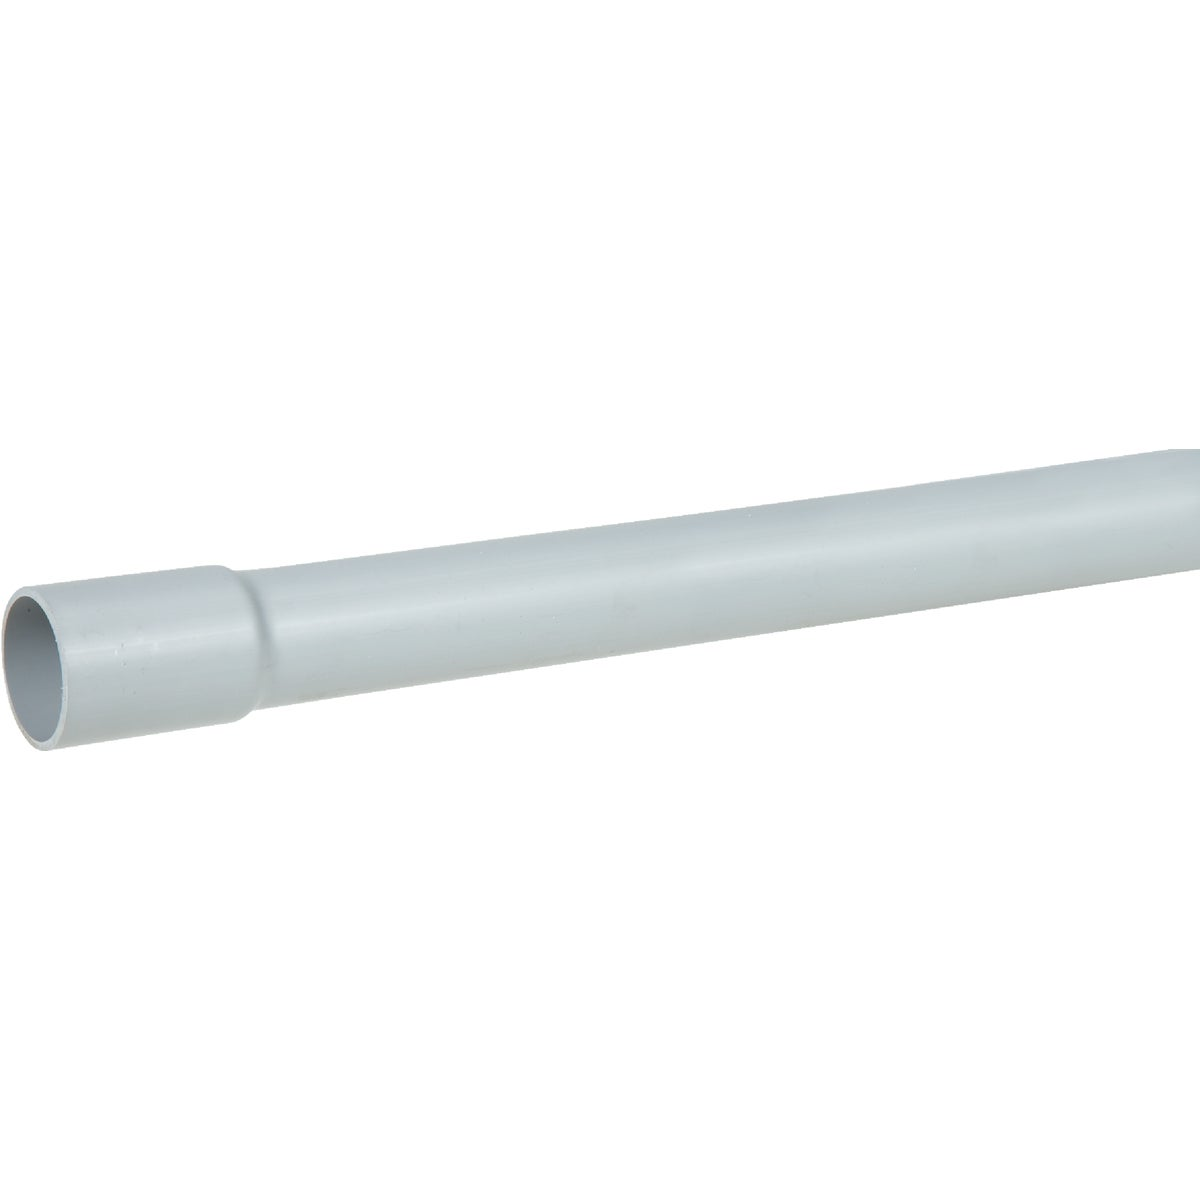 "3"" SCH 80 10' CONDUIT - 49413-010 by Prime Conduit"